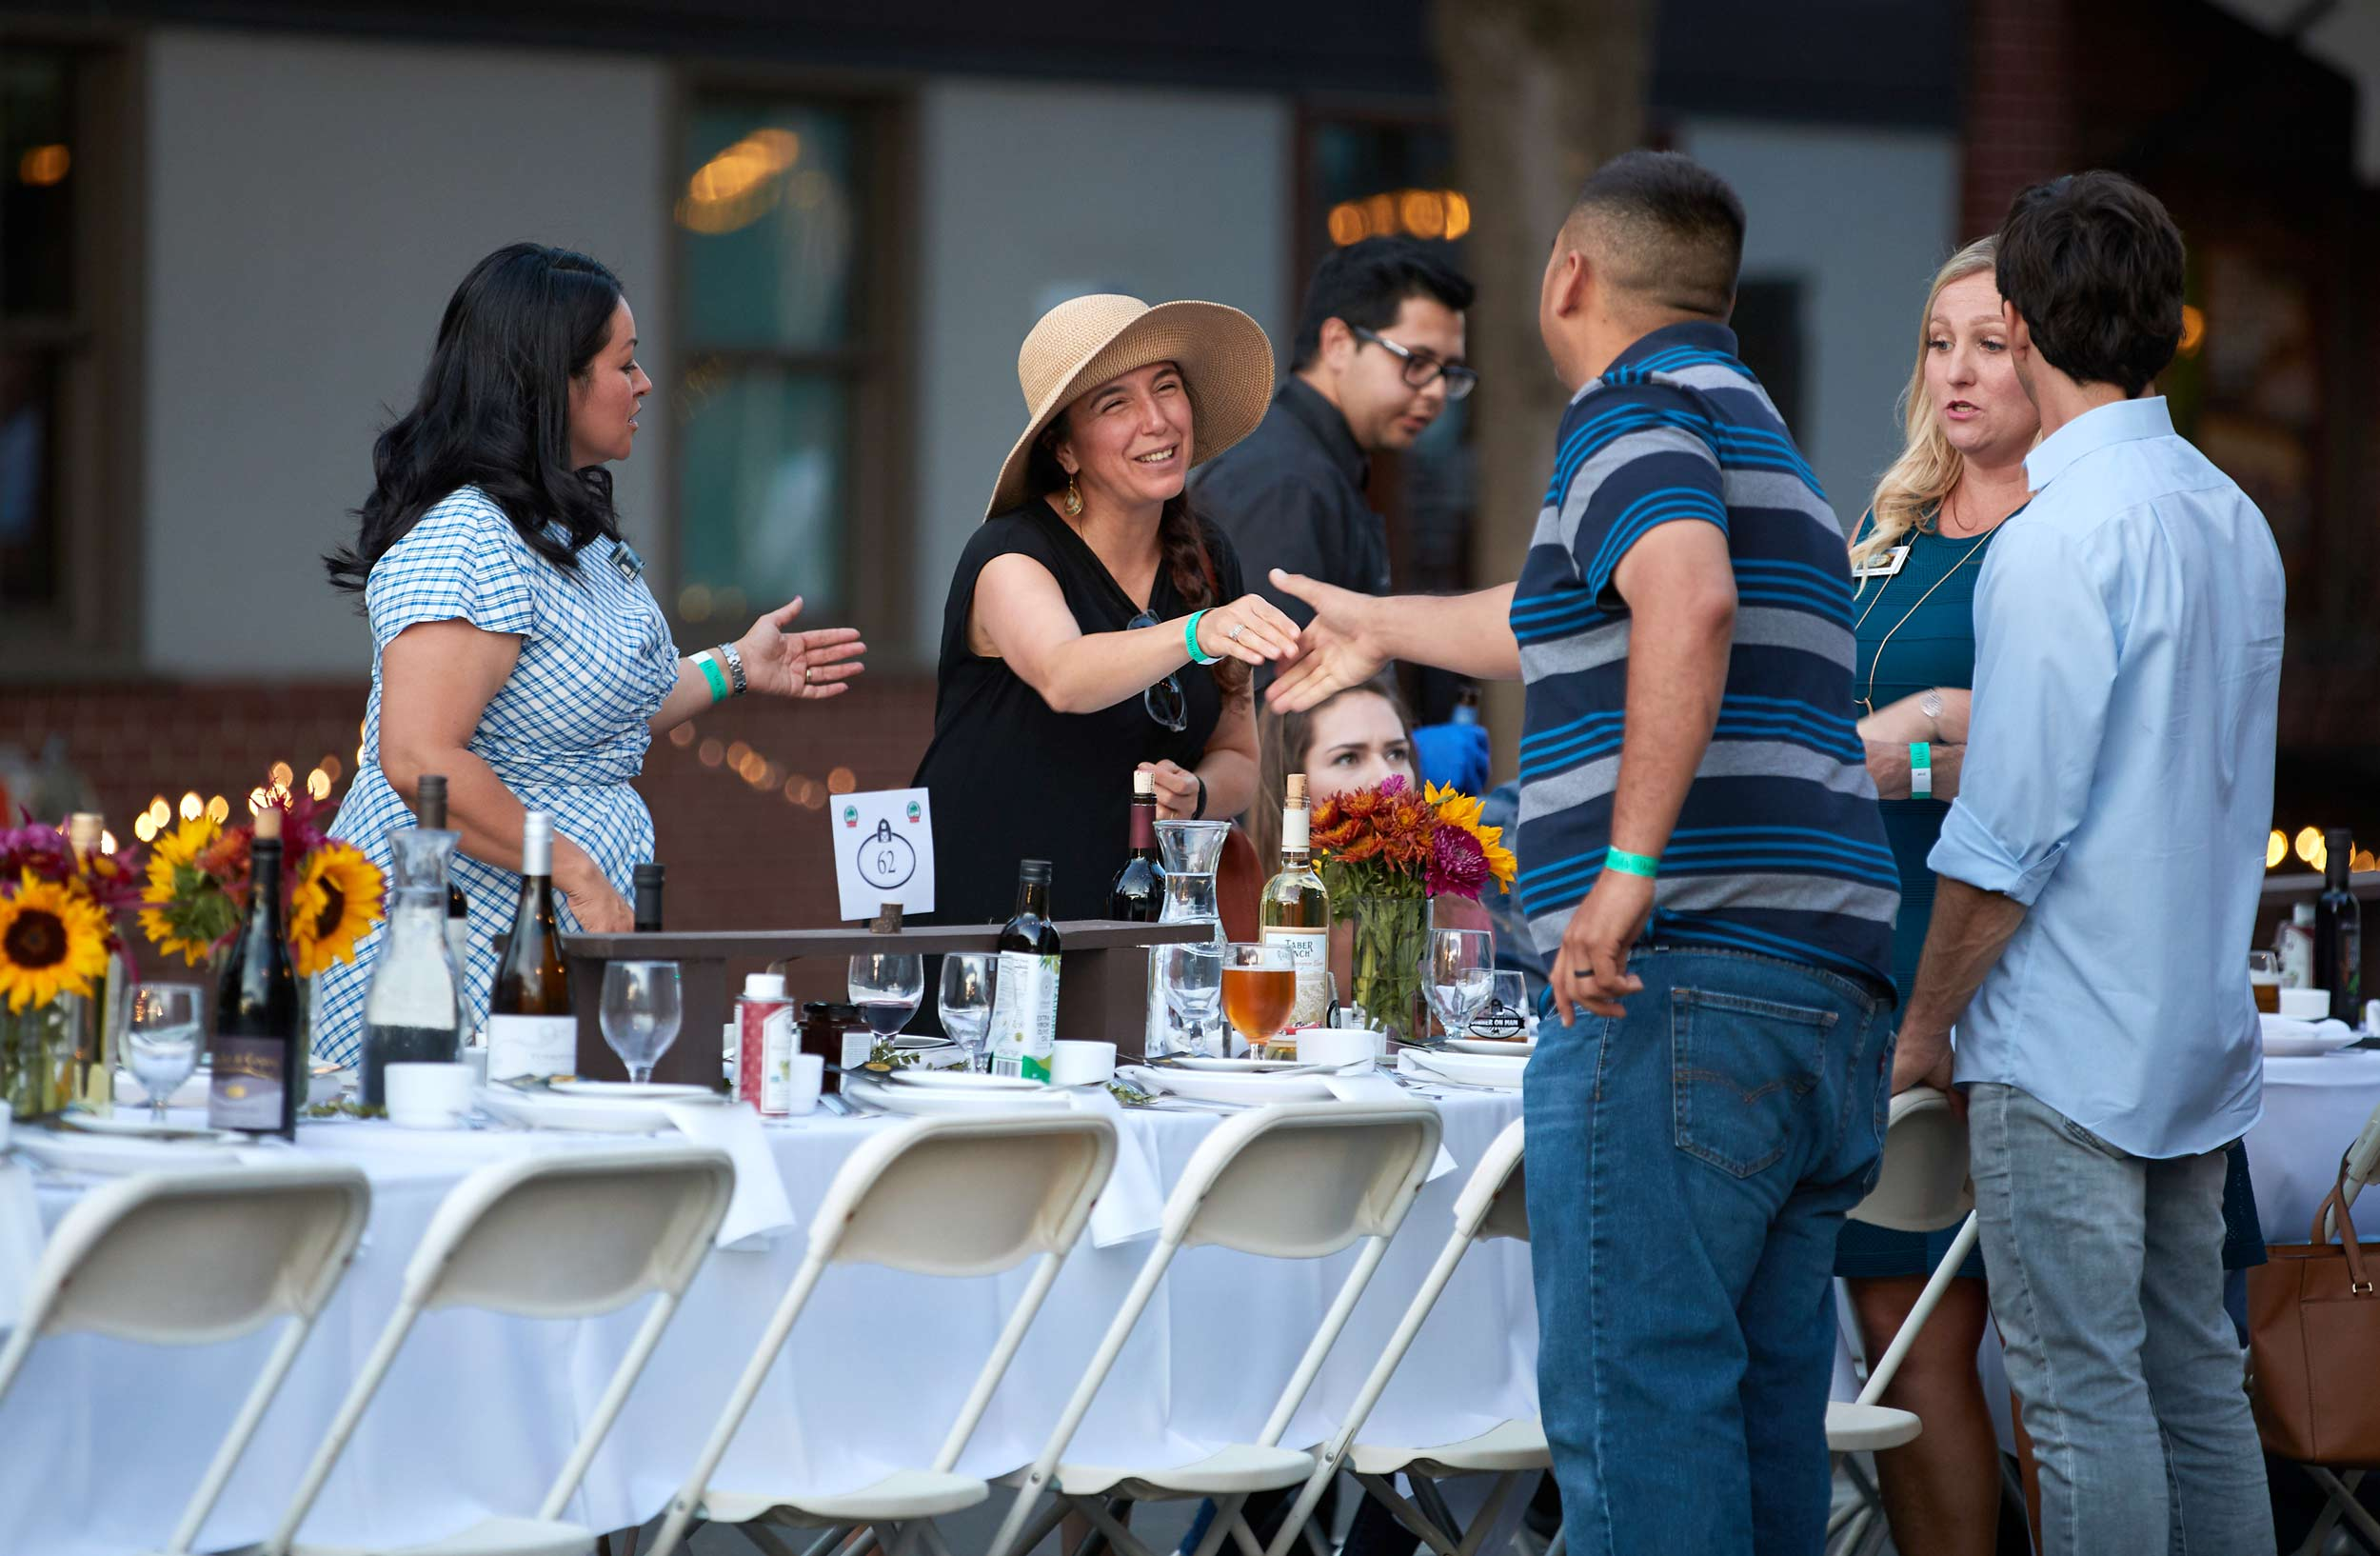 Diners Greet One Another at Woodland